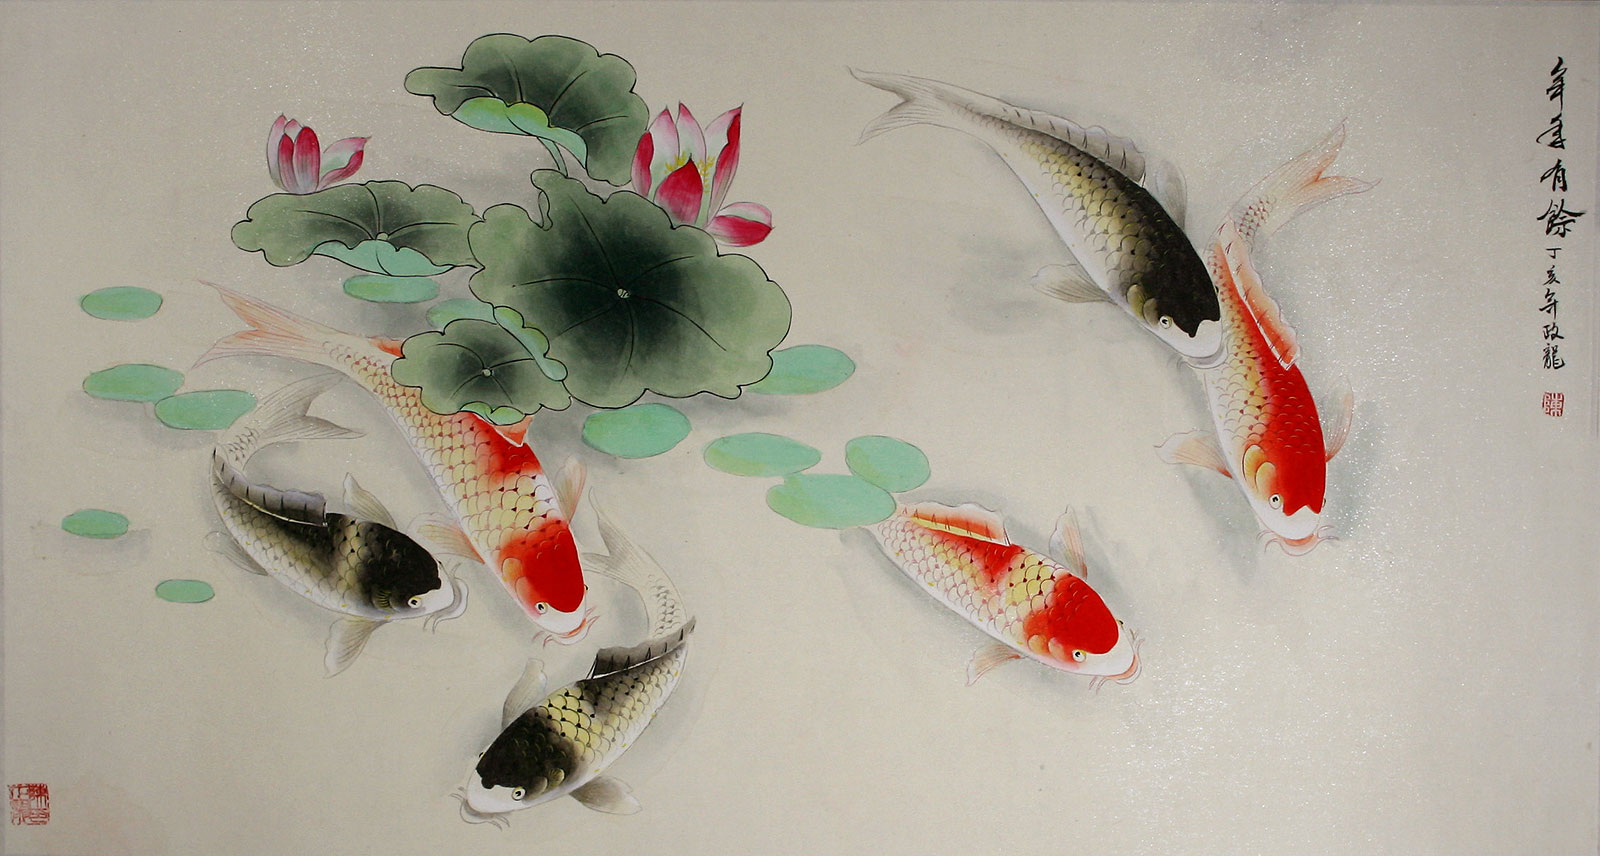 chinese koi fish watercolor artwork asian koi fish paintings wall scrolls chinese artwork